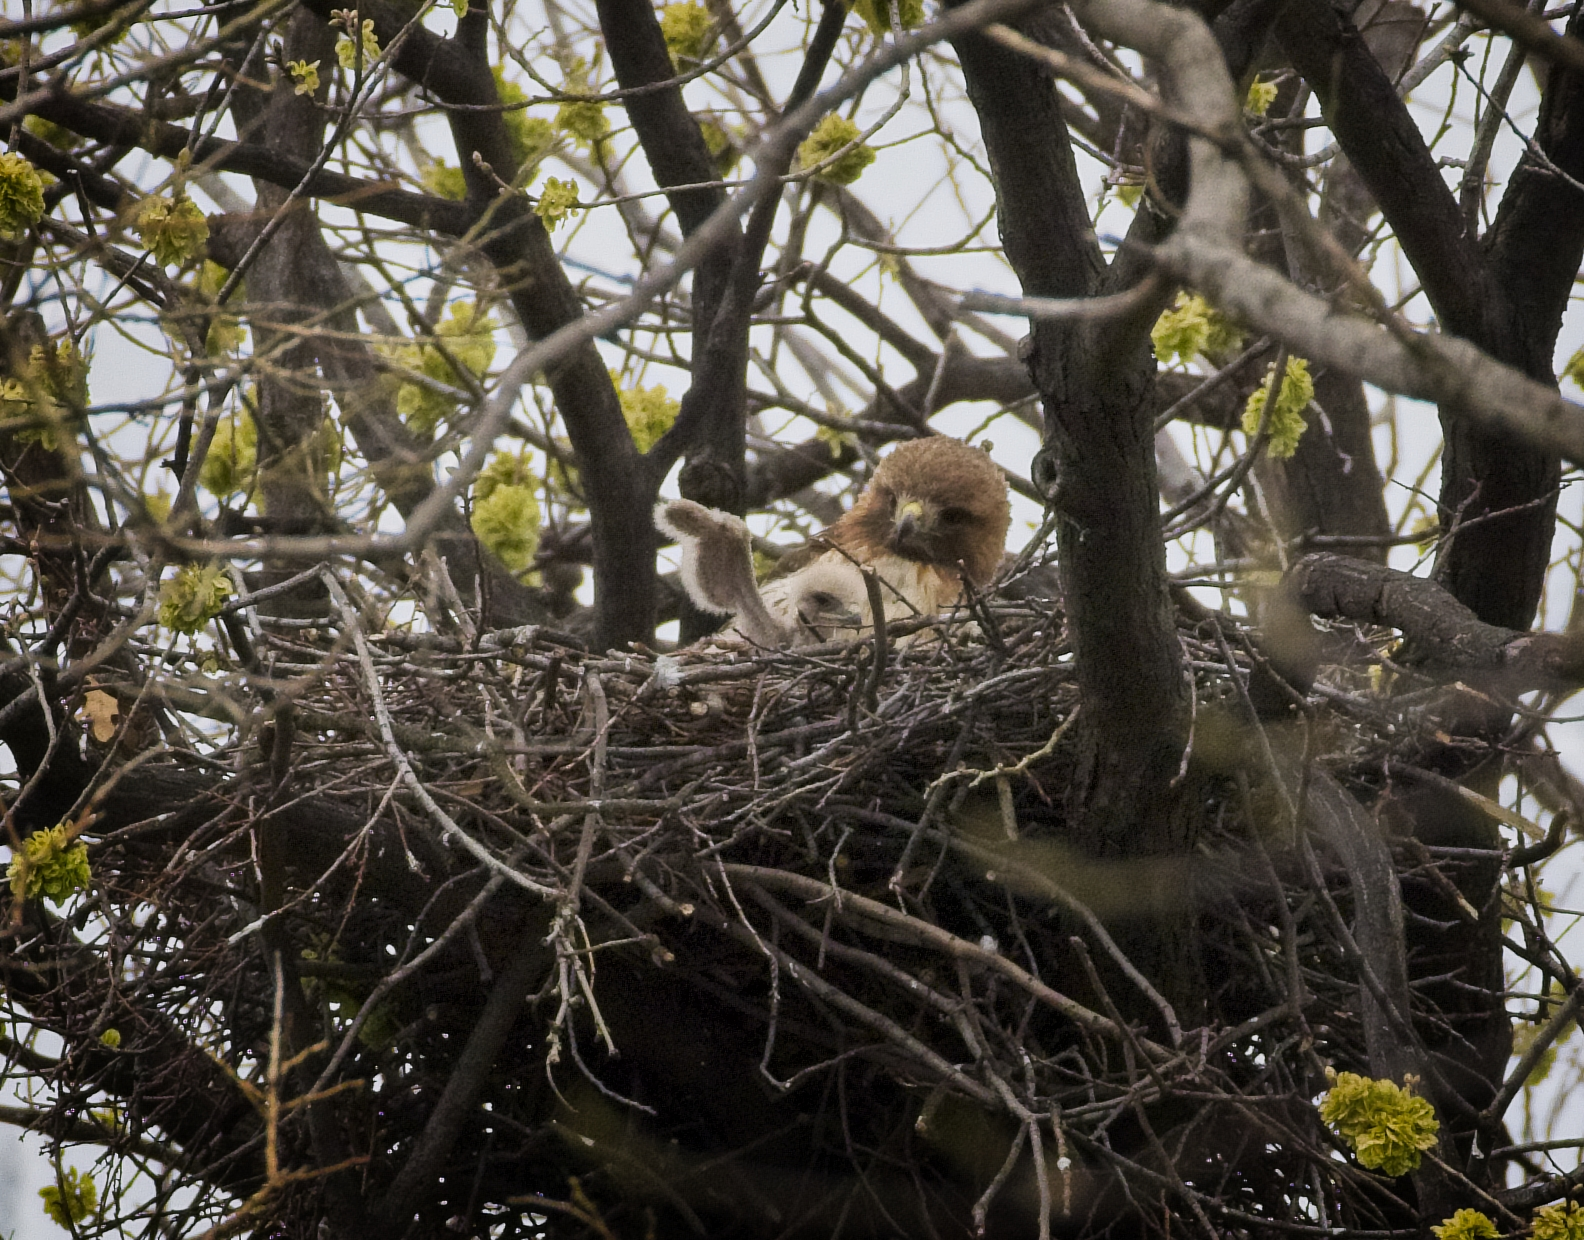 Red-tailed hawk Amelia and her chick in Tompkins Square